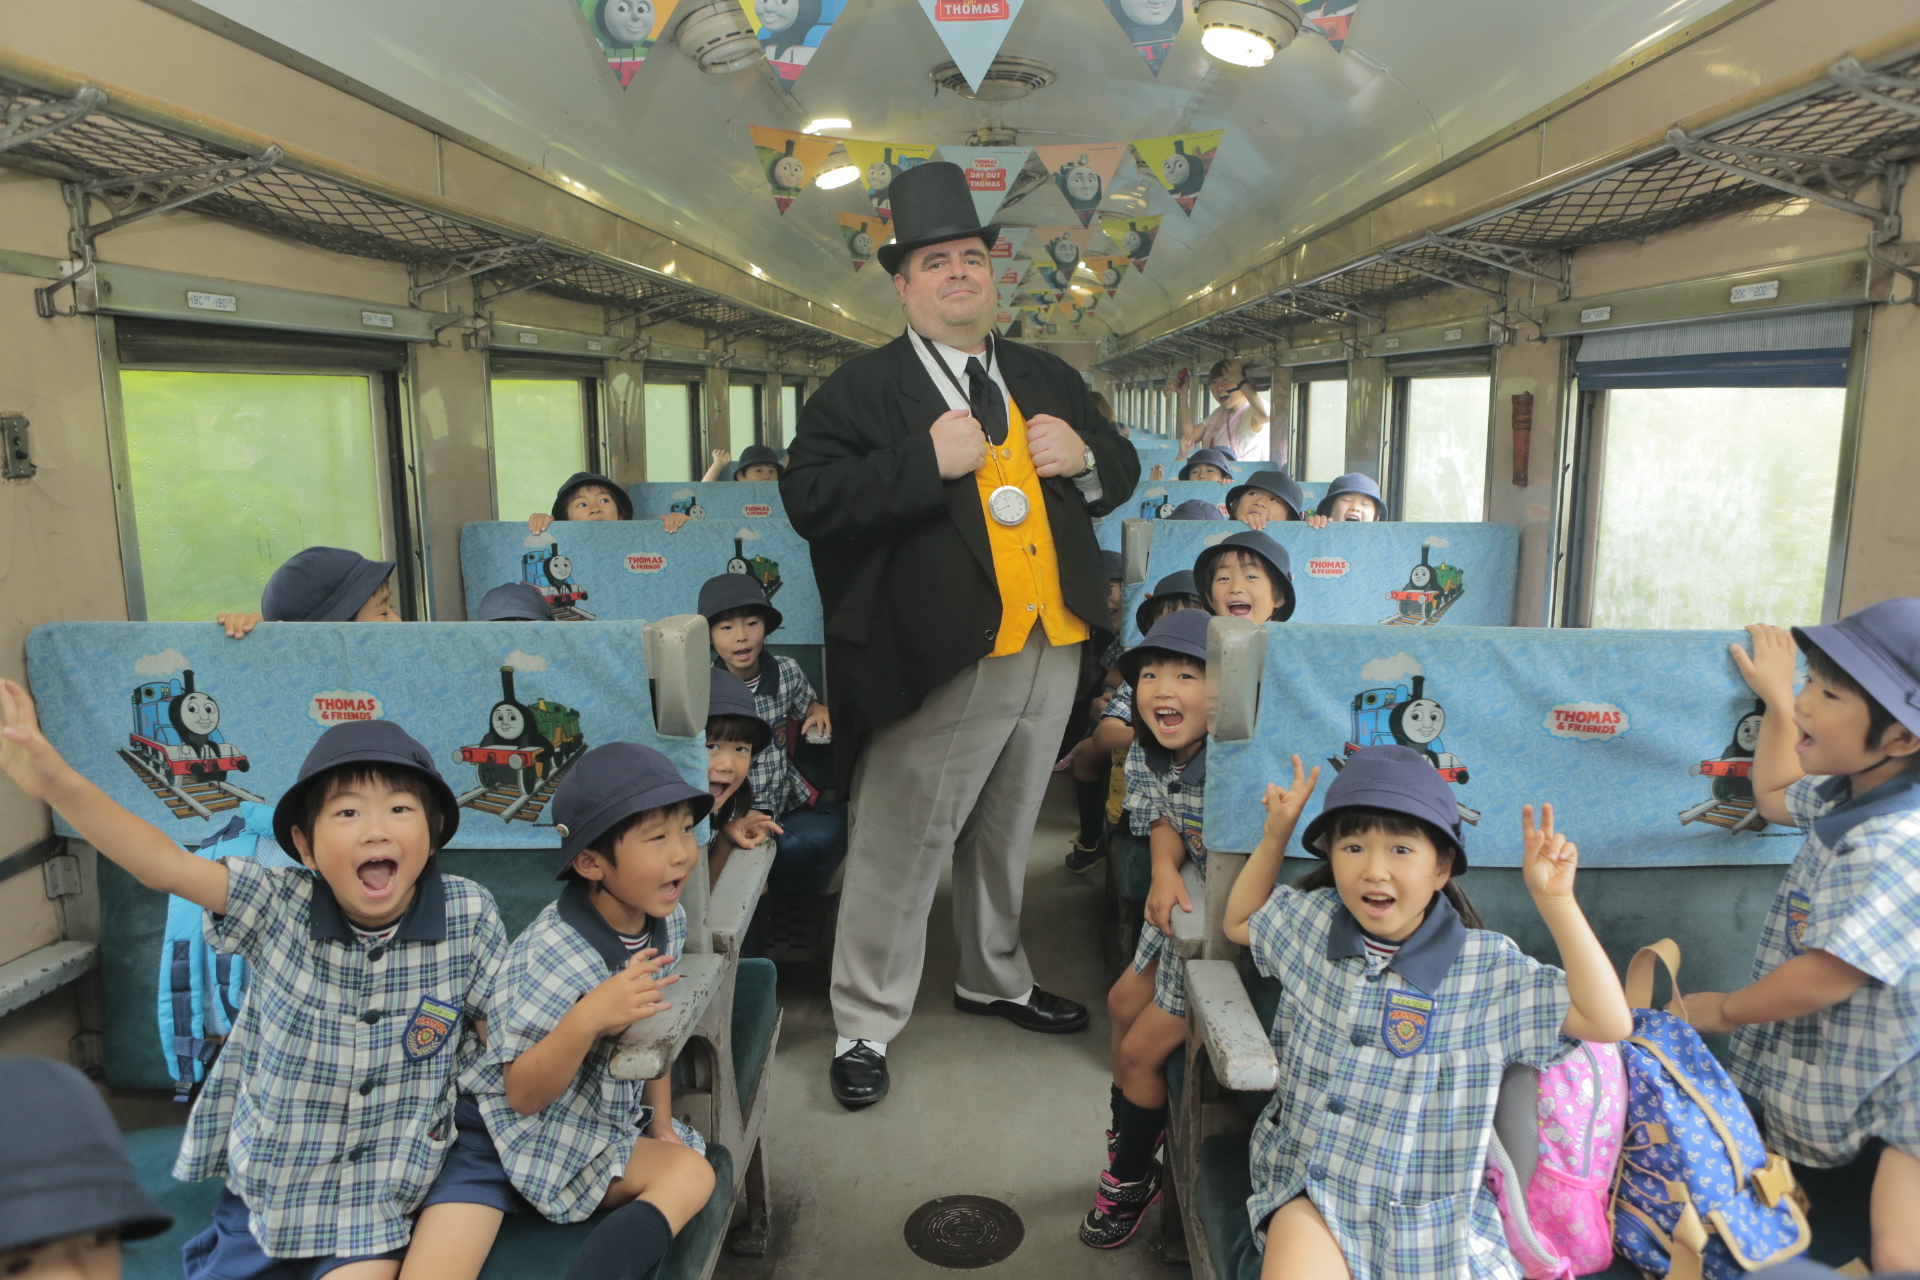 children are excited to ride with Thomas the train in Shizuoka Oigawa Railway in Japan